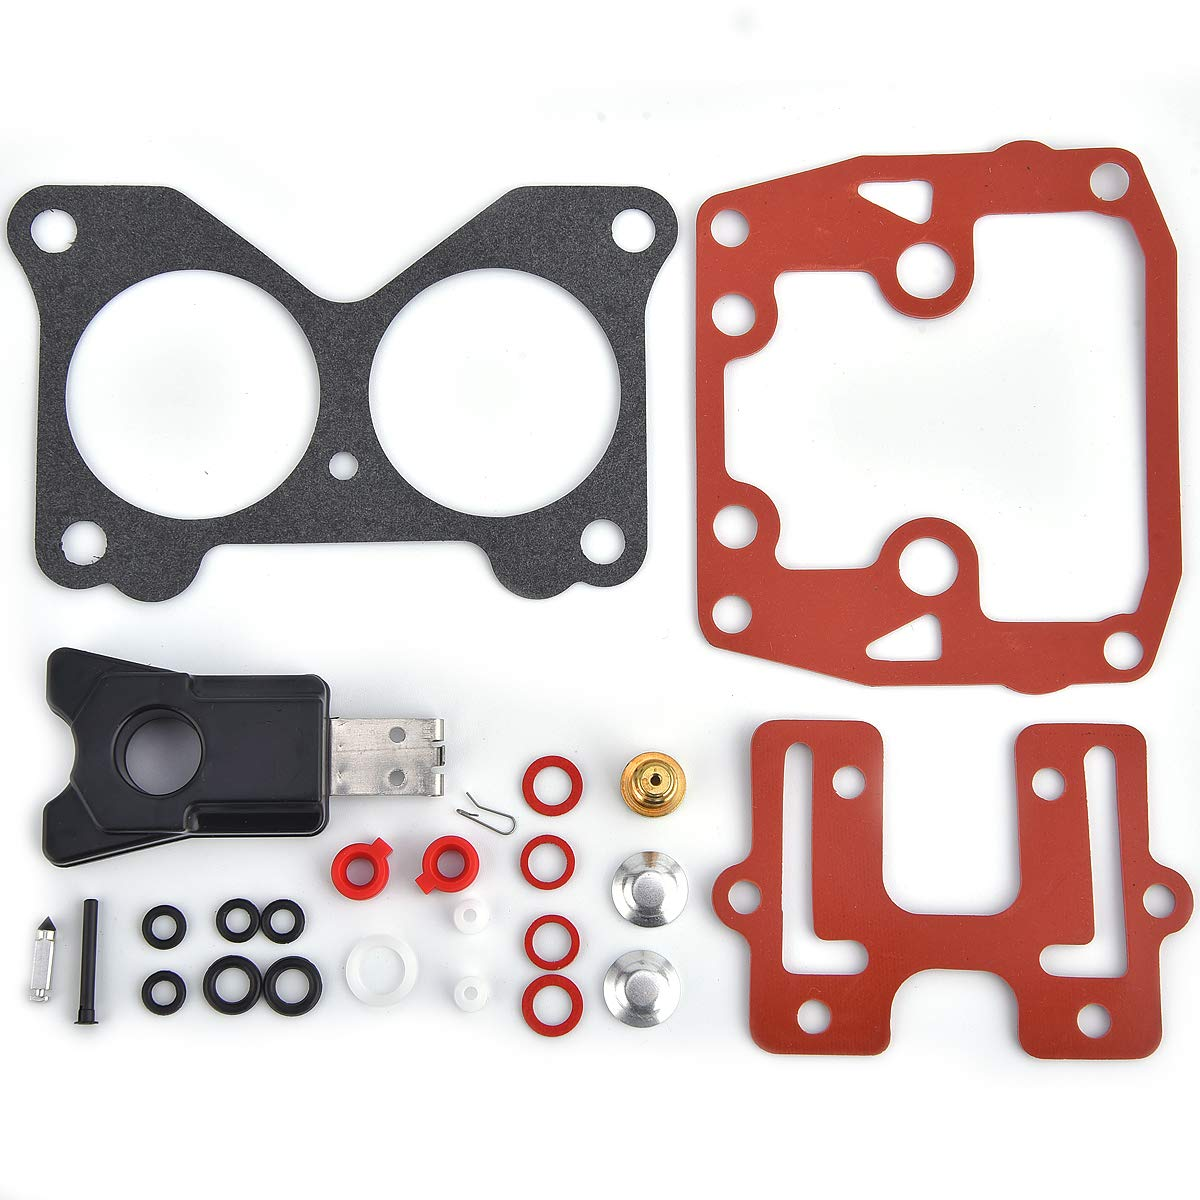 Carburetor 439076 Carb Repair Rebuild Kit for Johnson Evinrude Outboard Motors Replaces 439076